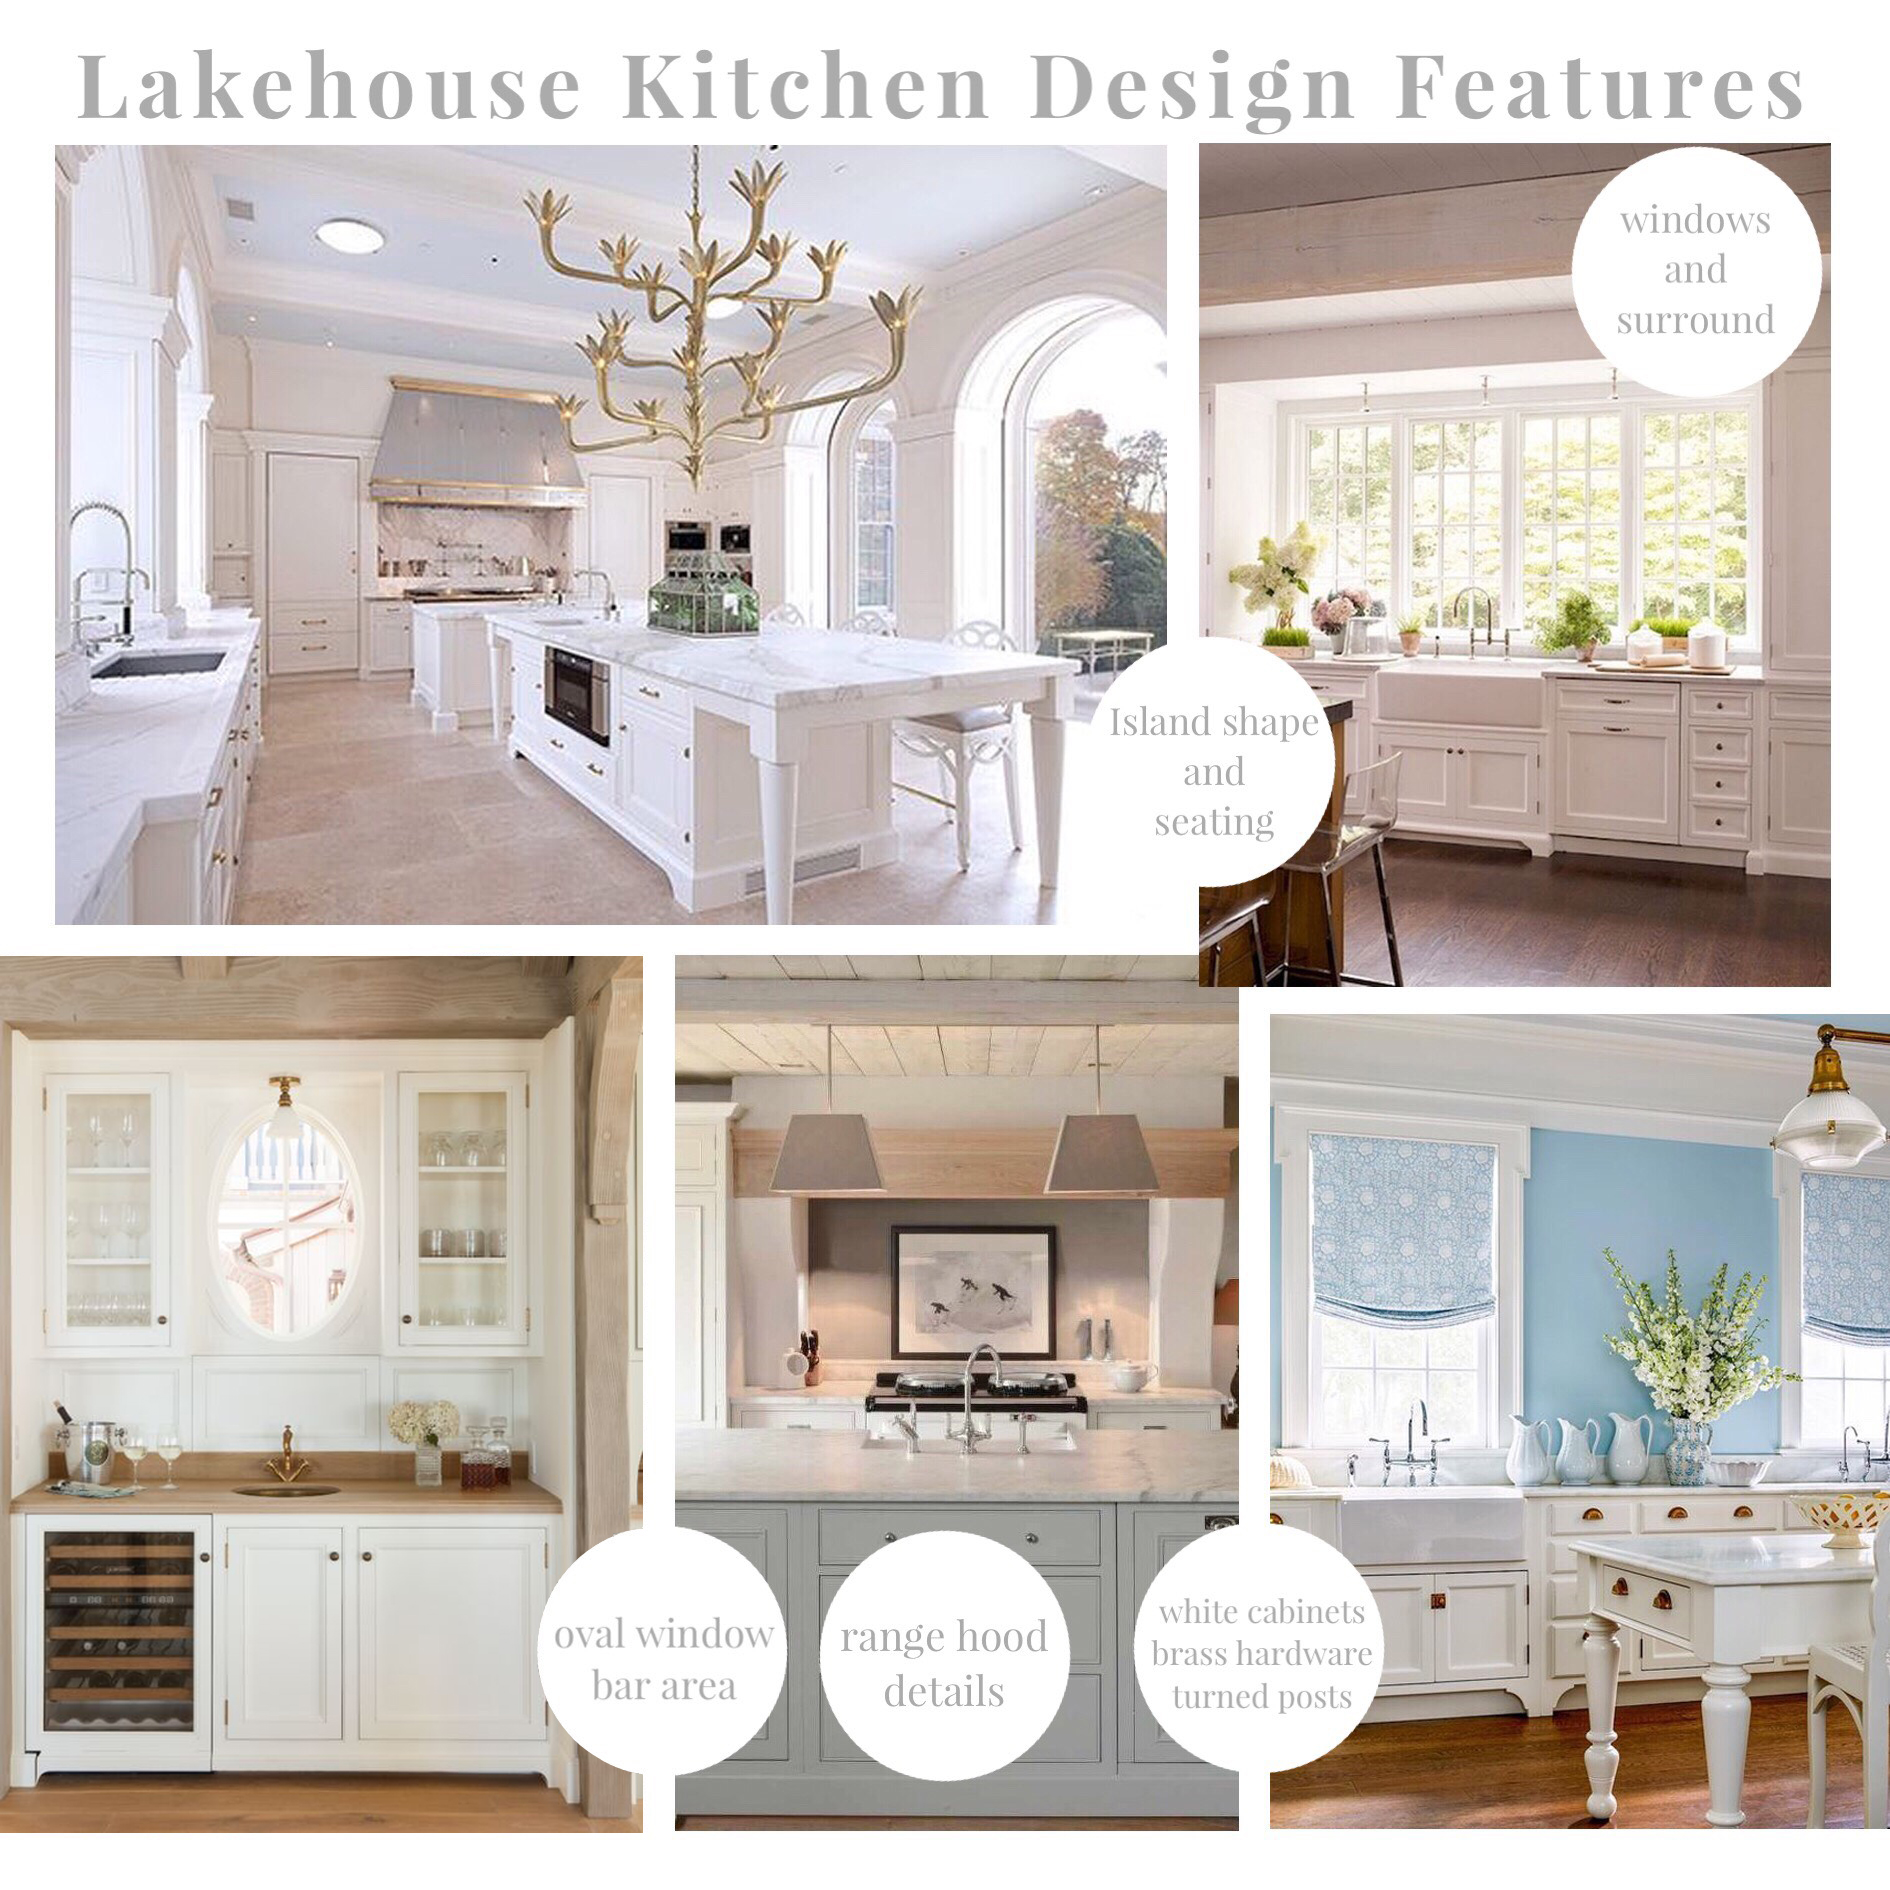 How to Plan and Design Your Kitchen: Lakehouse Kitchen Design